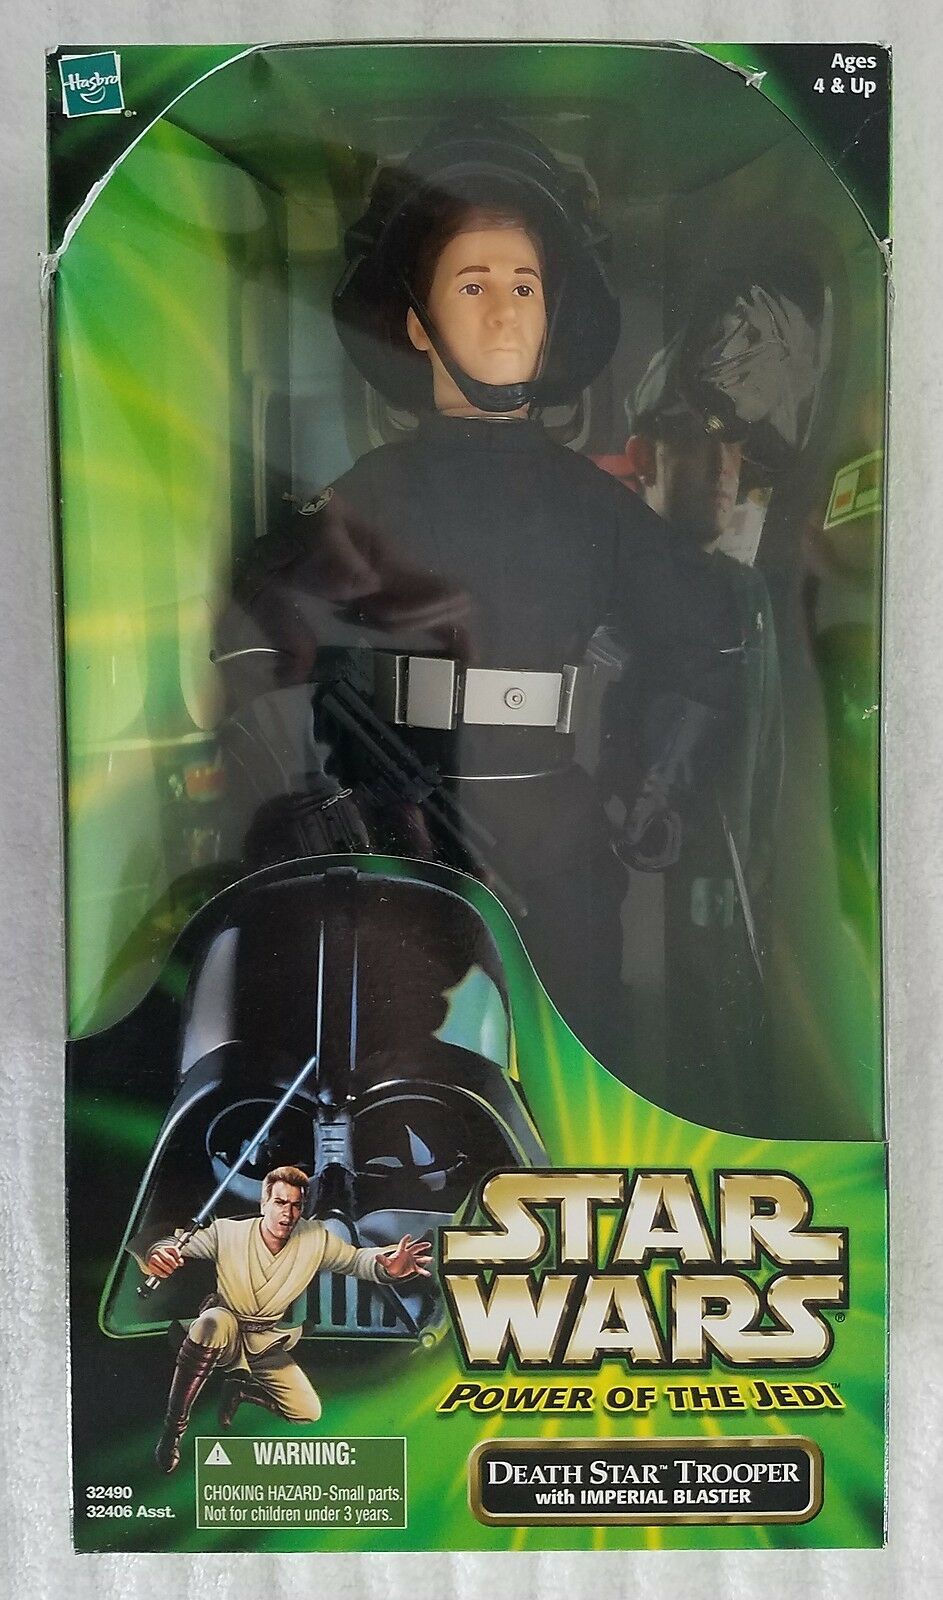 STAR WARS POWER OF THE JEDI DEATH STAR TROOPER 12 INCH ACTION FIGURE